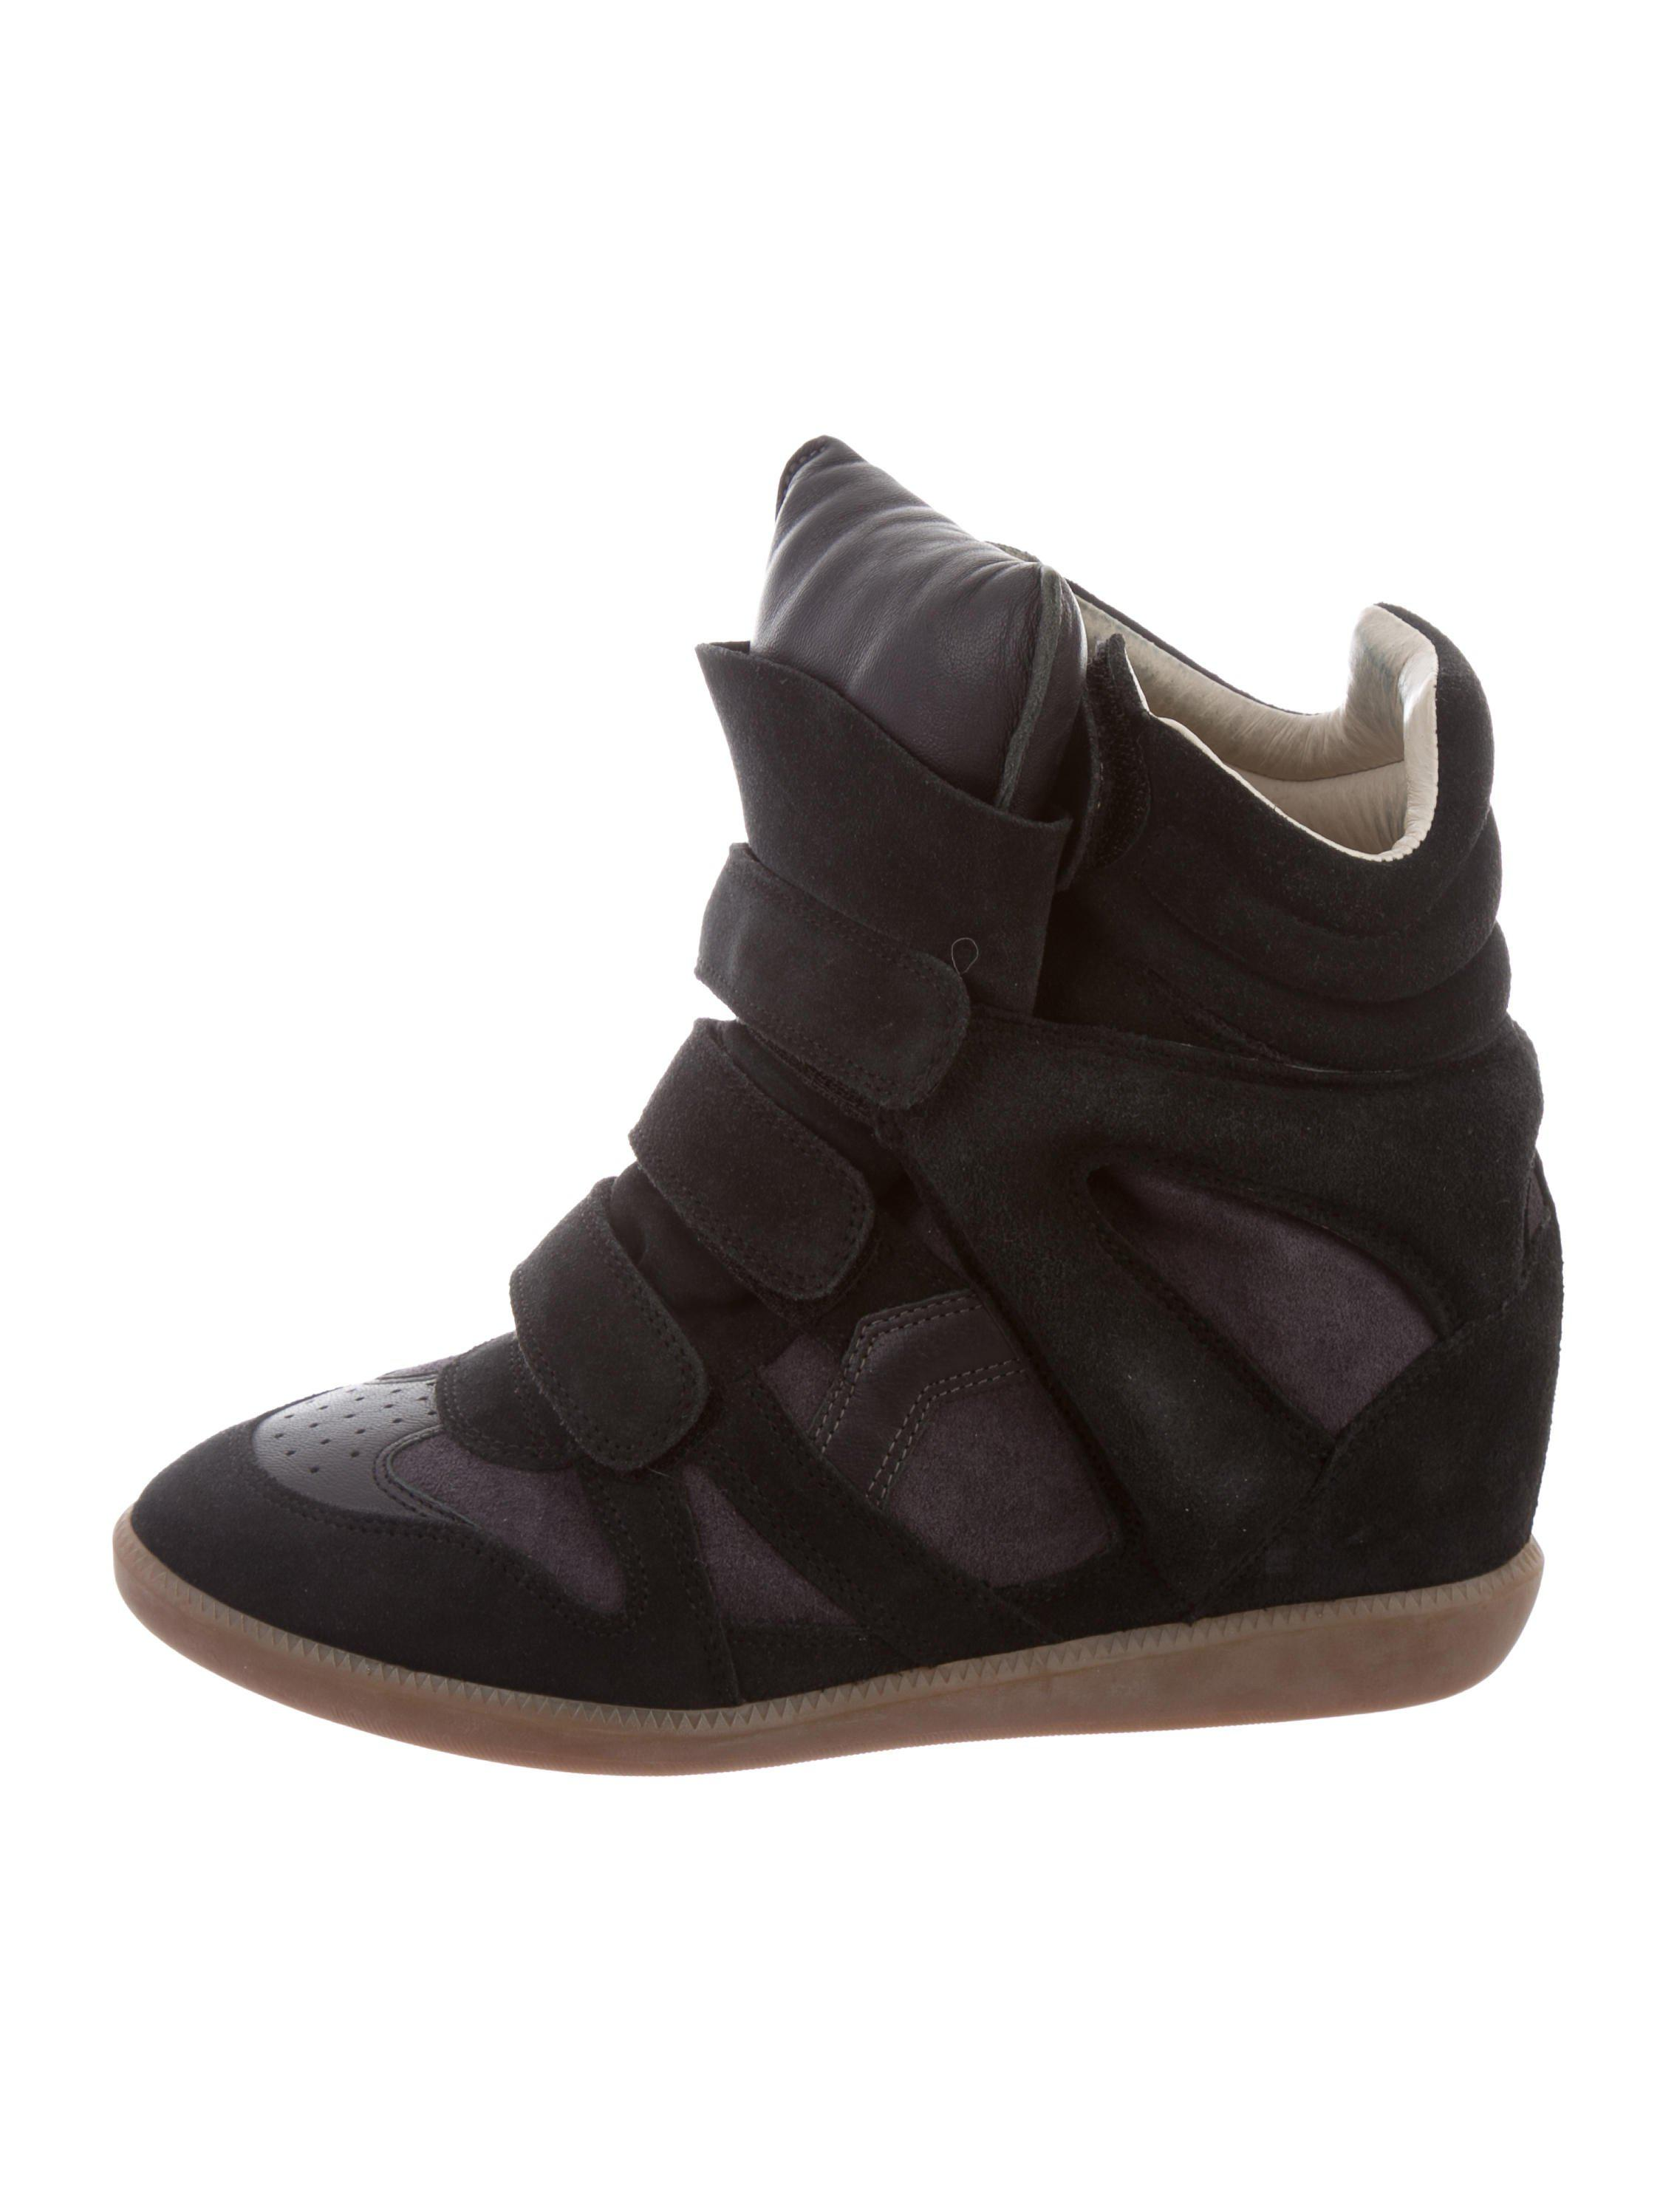 Étoile Isabel Marant Beckett High-Top Sneakers for sale official site factory outlet for sale 2015 online clearance official site clearance store for sale ICghNXvV9